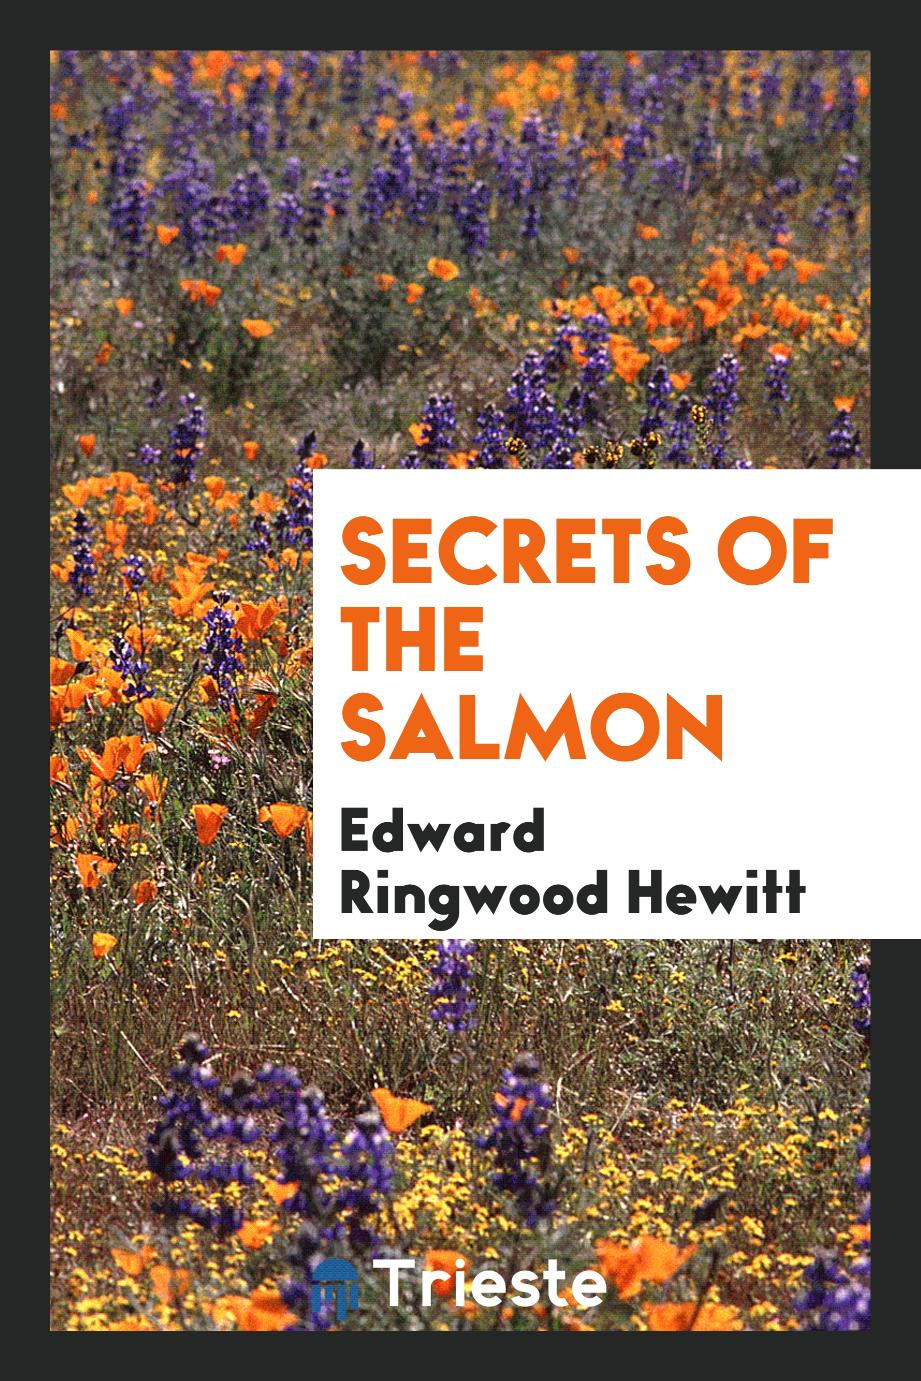 Secrets of the salmon